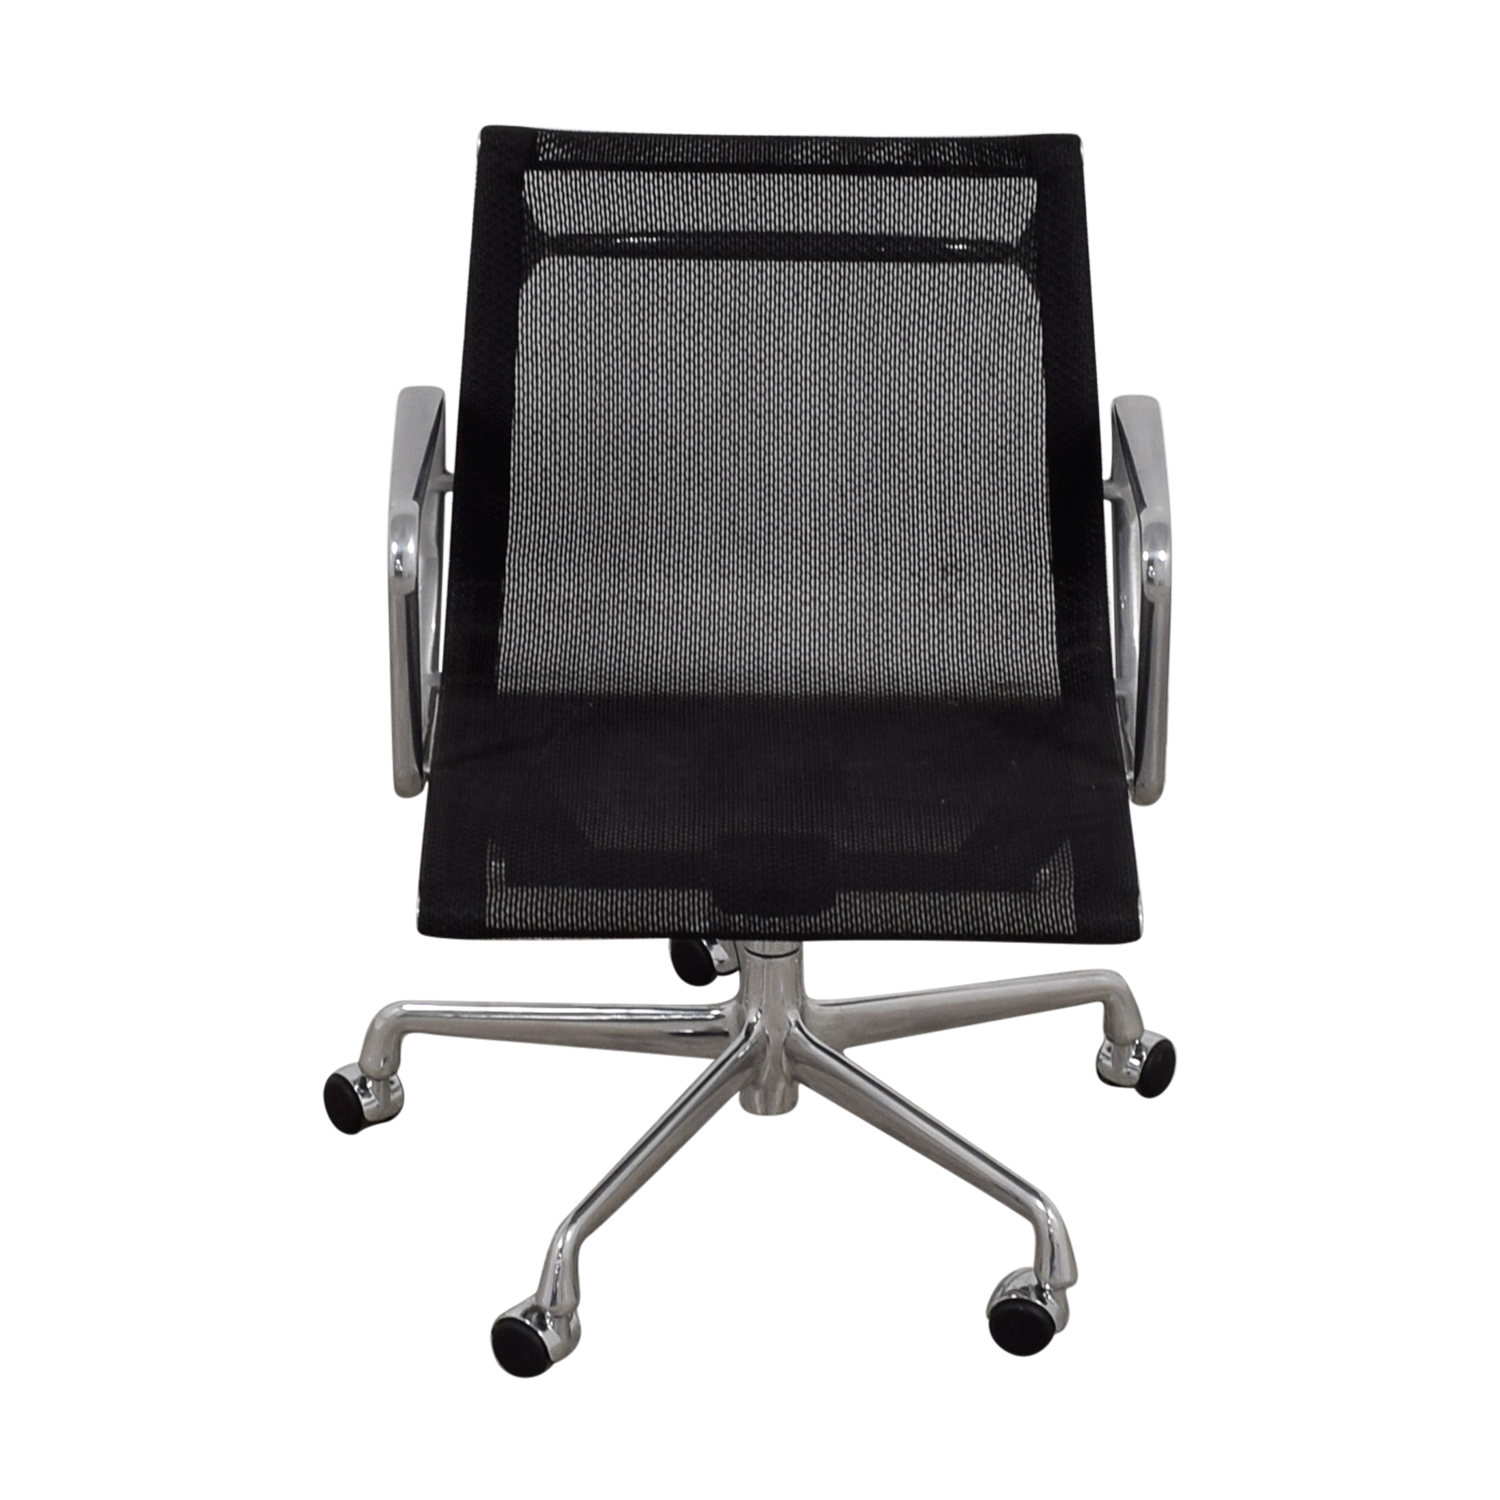 Eames Aluminum Group Eames Aluminum Group Management Mesh Chair nj